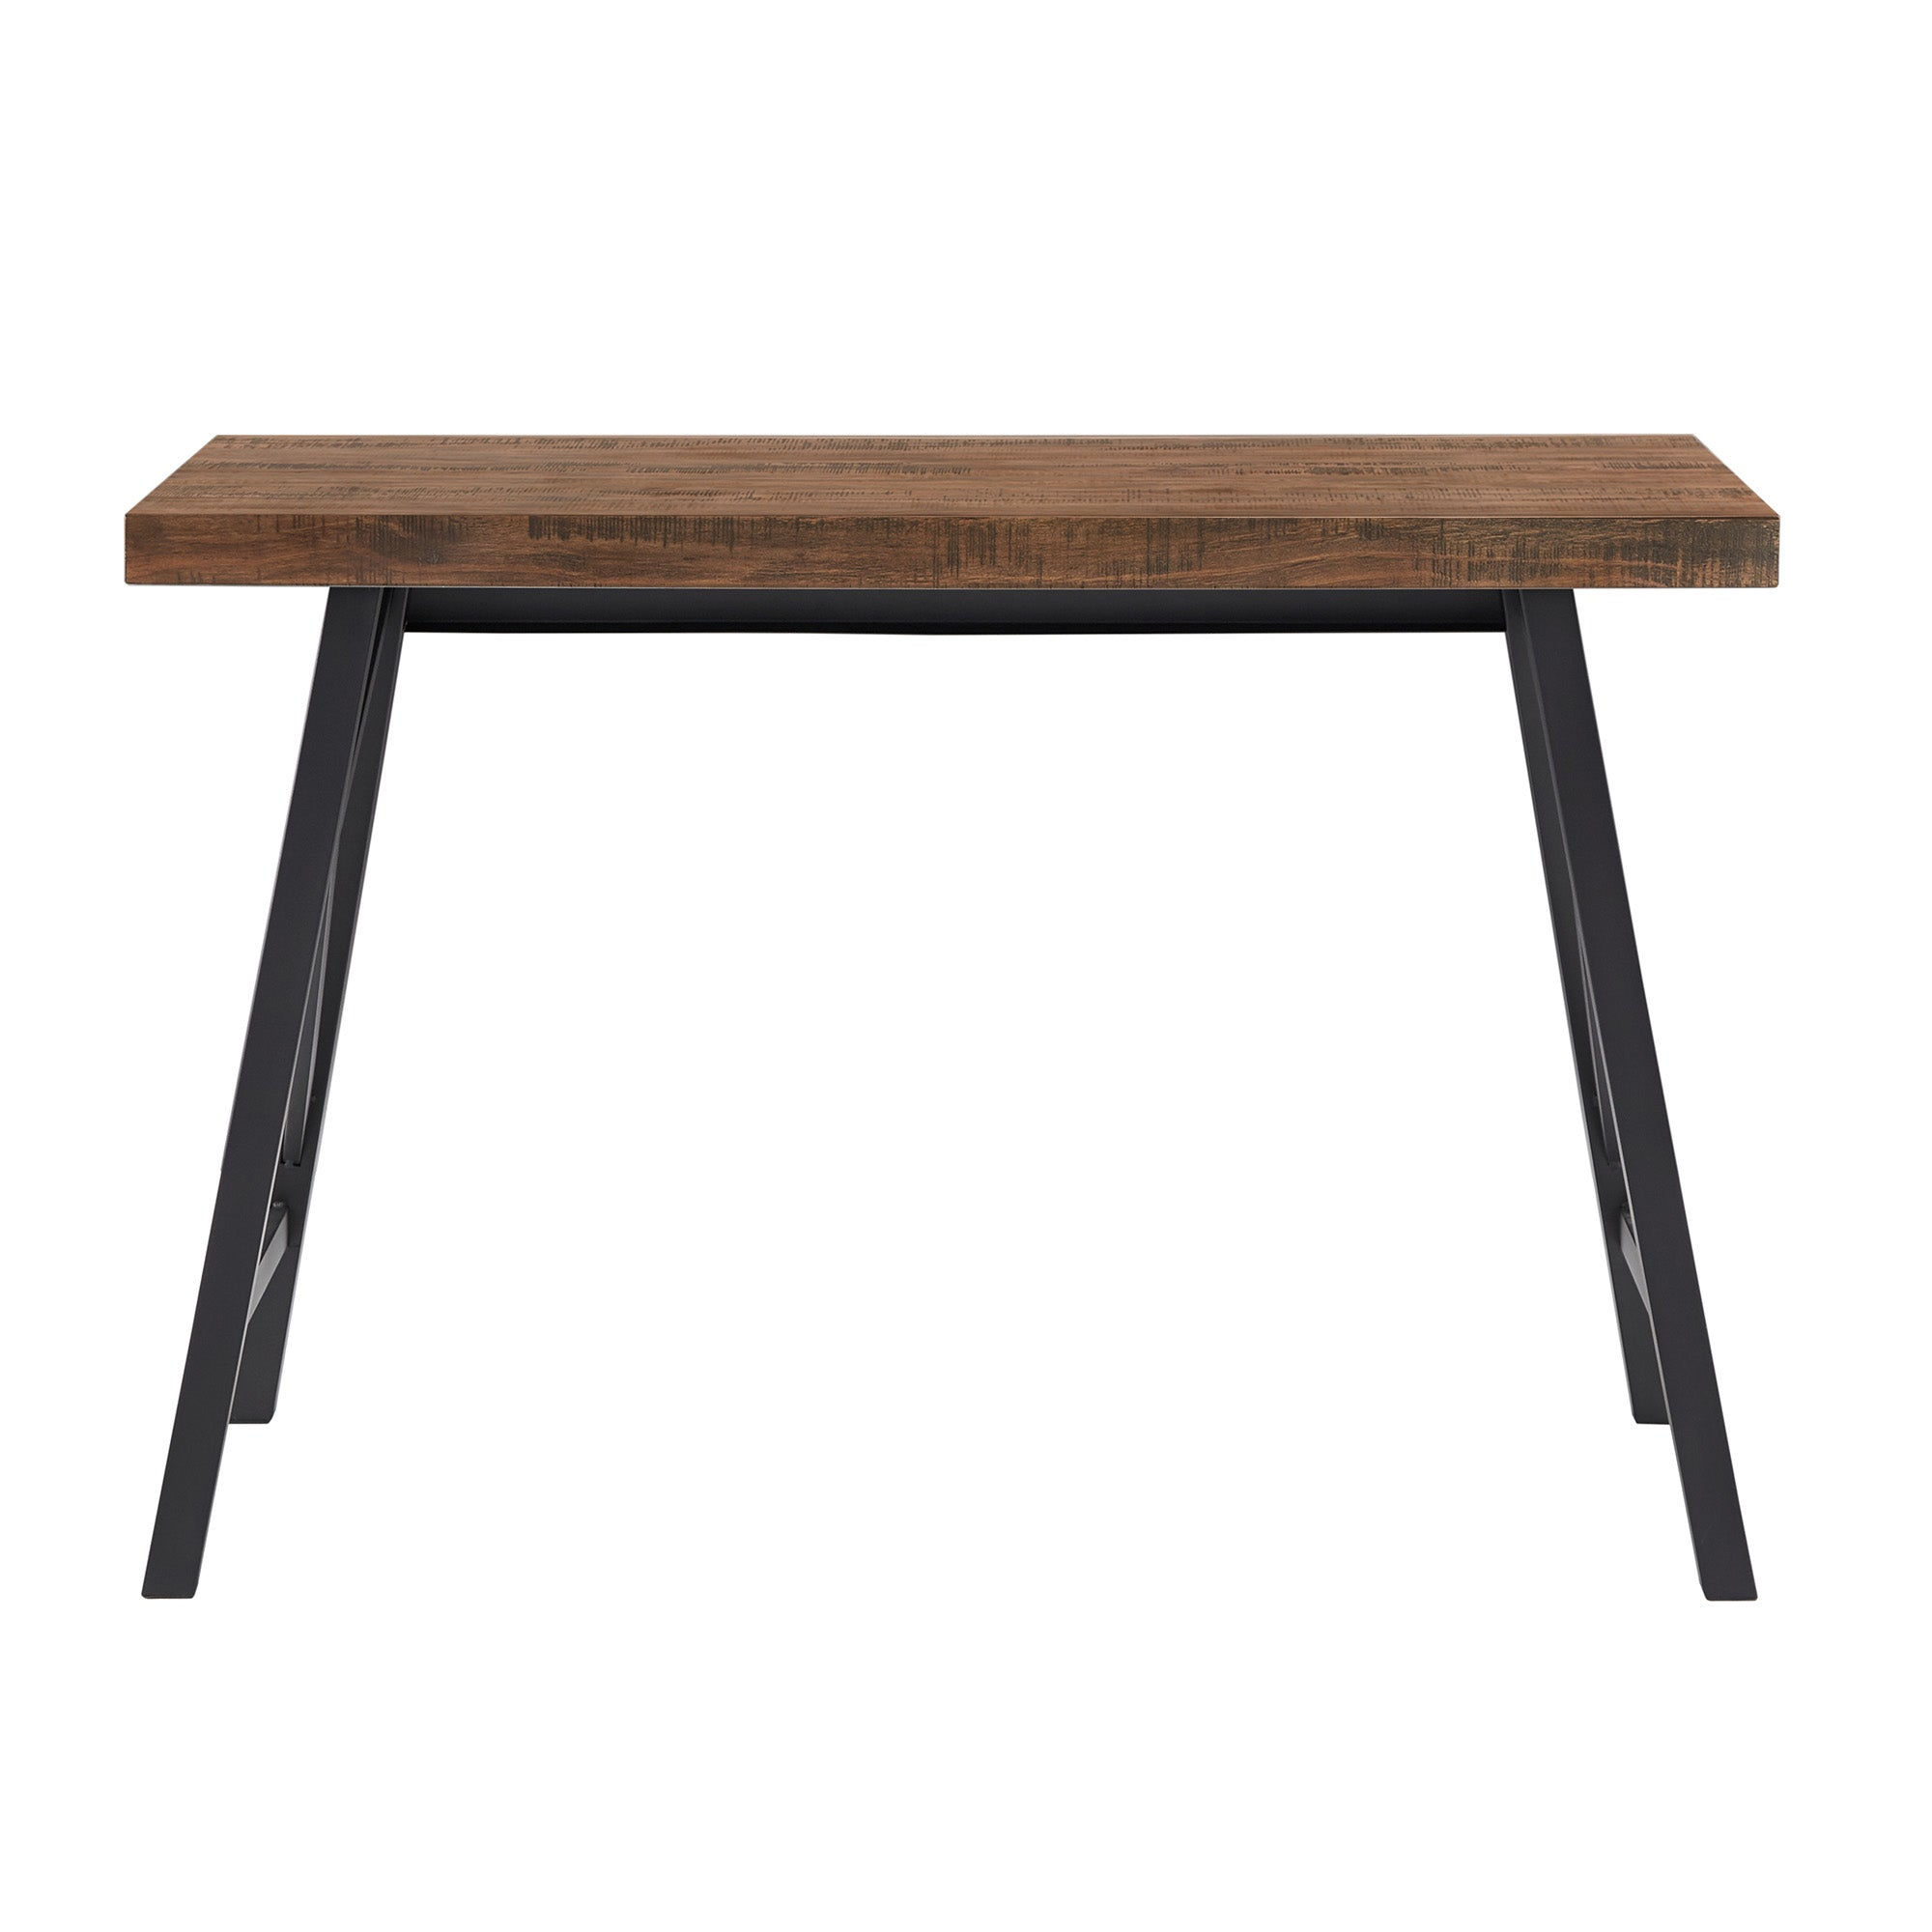 Rustic X-Base Desk - Brown Finish